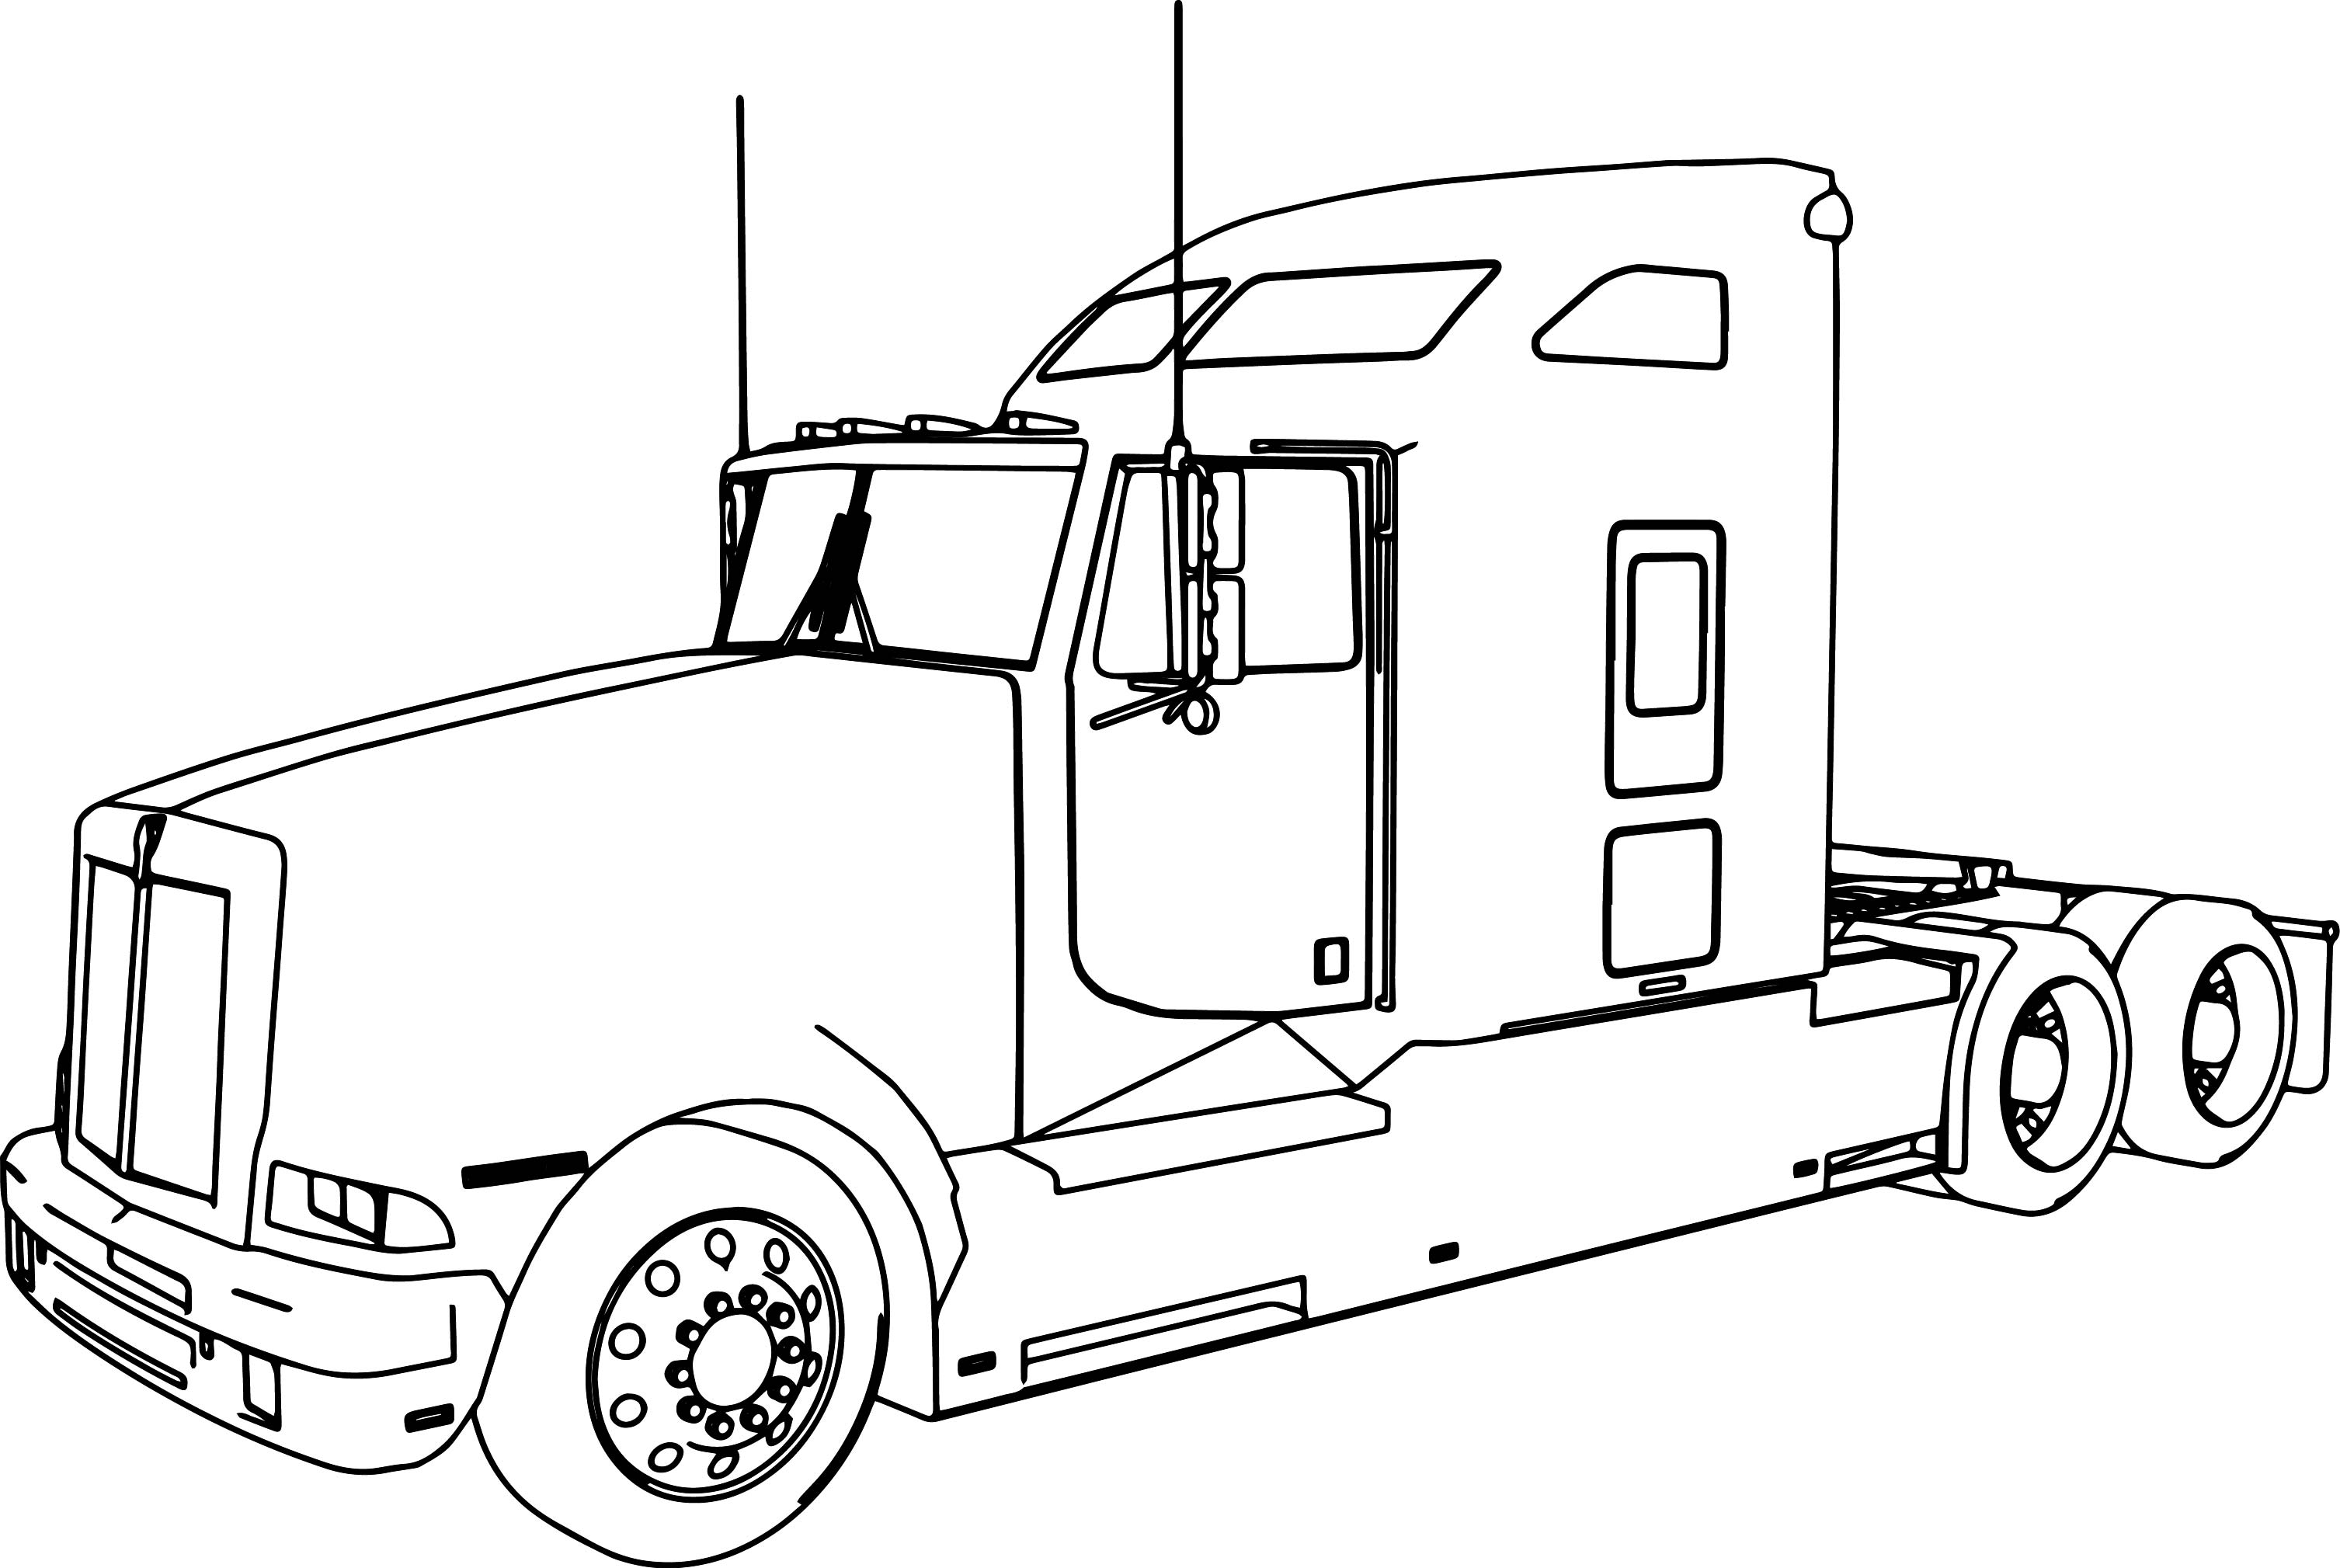 truck with trailer coloring pages semi trailer truck coloring page for kids transportation trailer with coloring truck pages